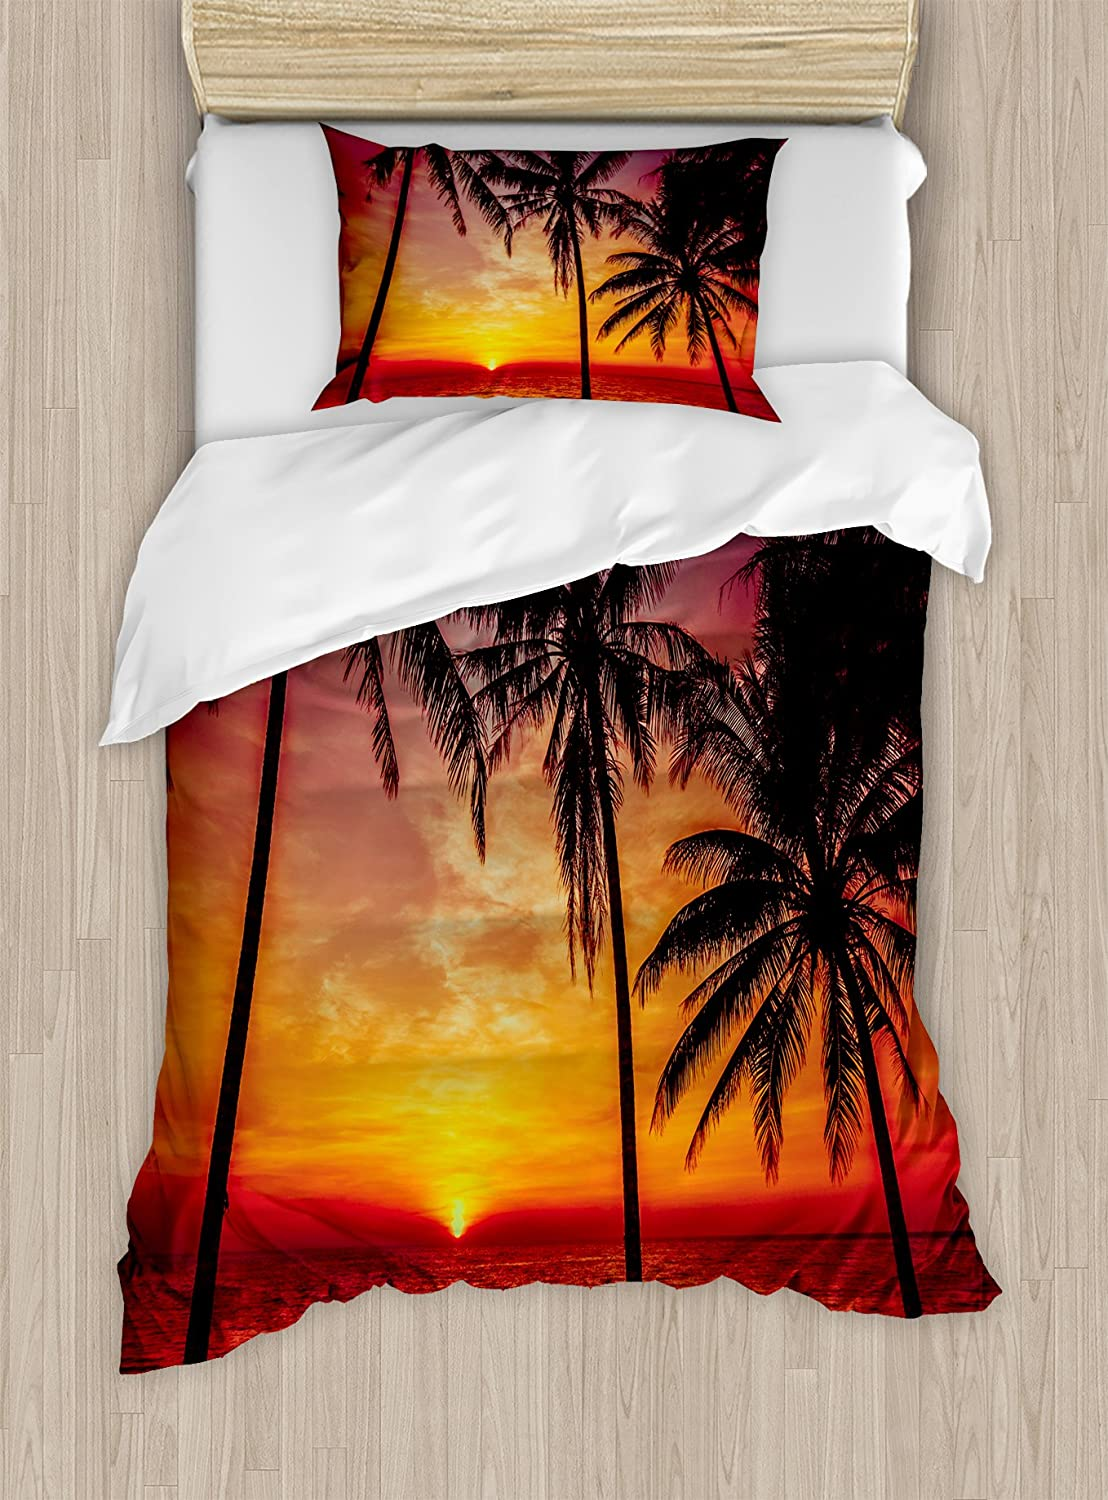 Tropical Decor Duvet Cover Set by Ambesonne, Sunset Tropical Beach Palm Trees Peaceful Ocean Evening View Resort, 2 Piece Bedding Set with 1 Pillow Sham, Twin / Twin XL Size